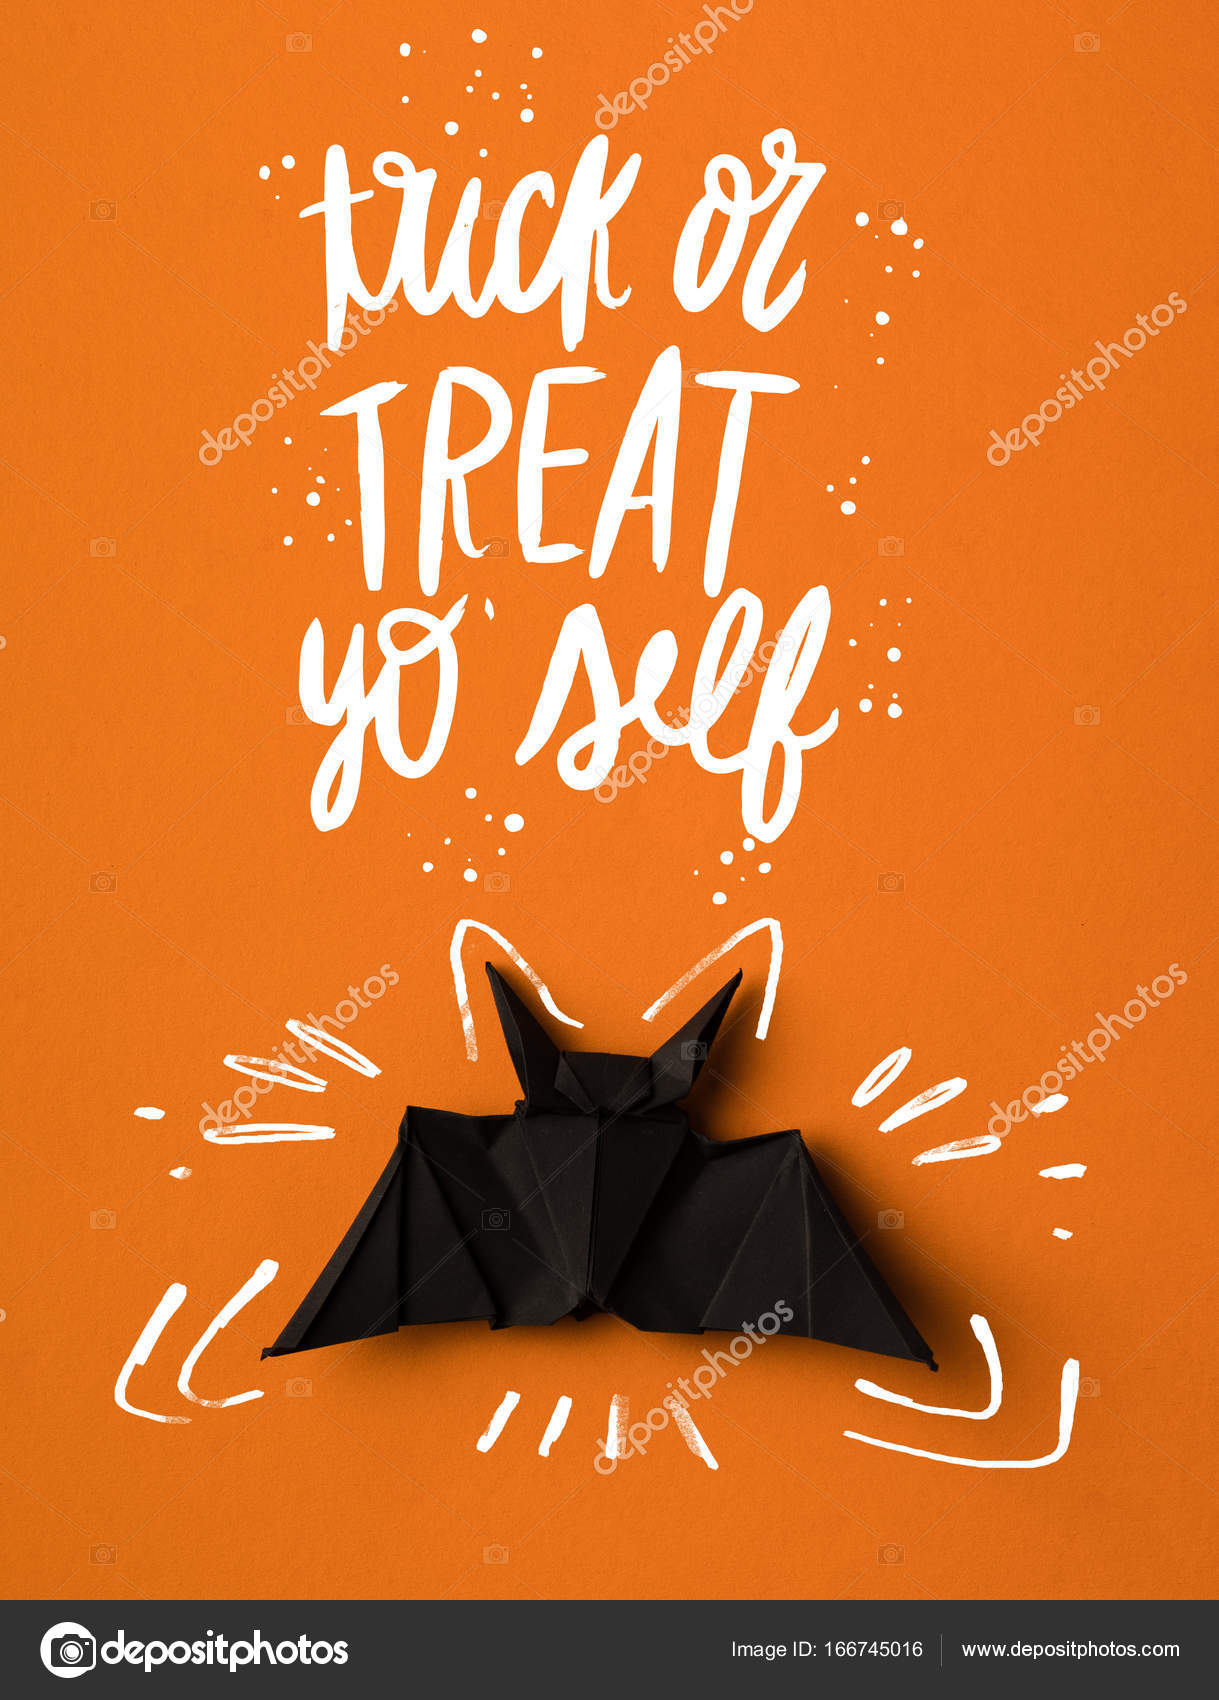 Halloween origami bat stock photo antonmatyukha 166745016 black halloween origami bat isolated on orange photo by antonmatyukha jeuxipadfo Gallery